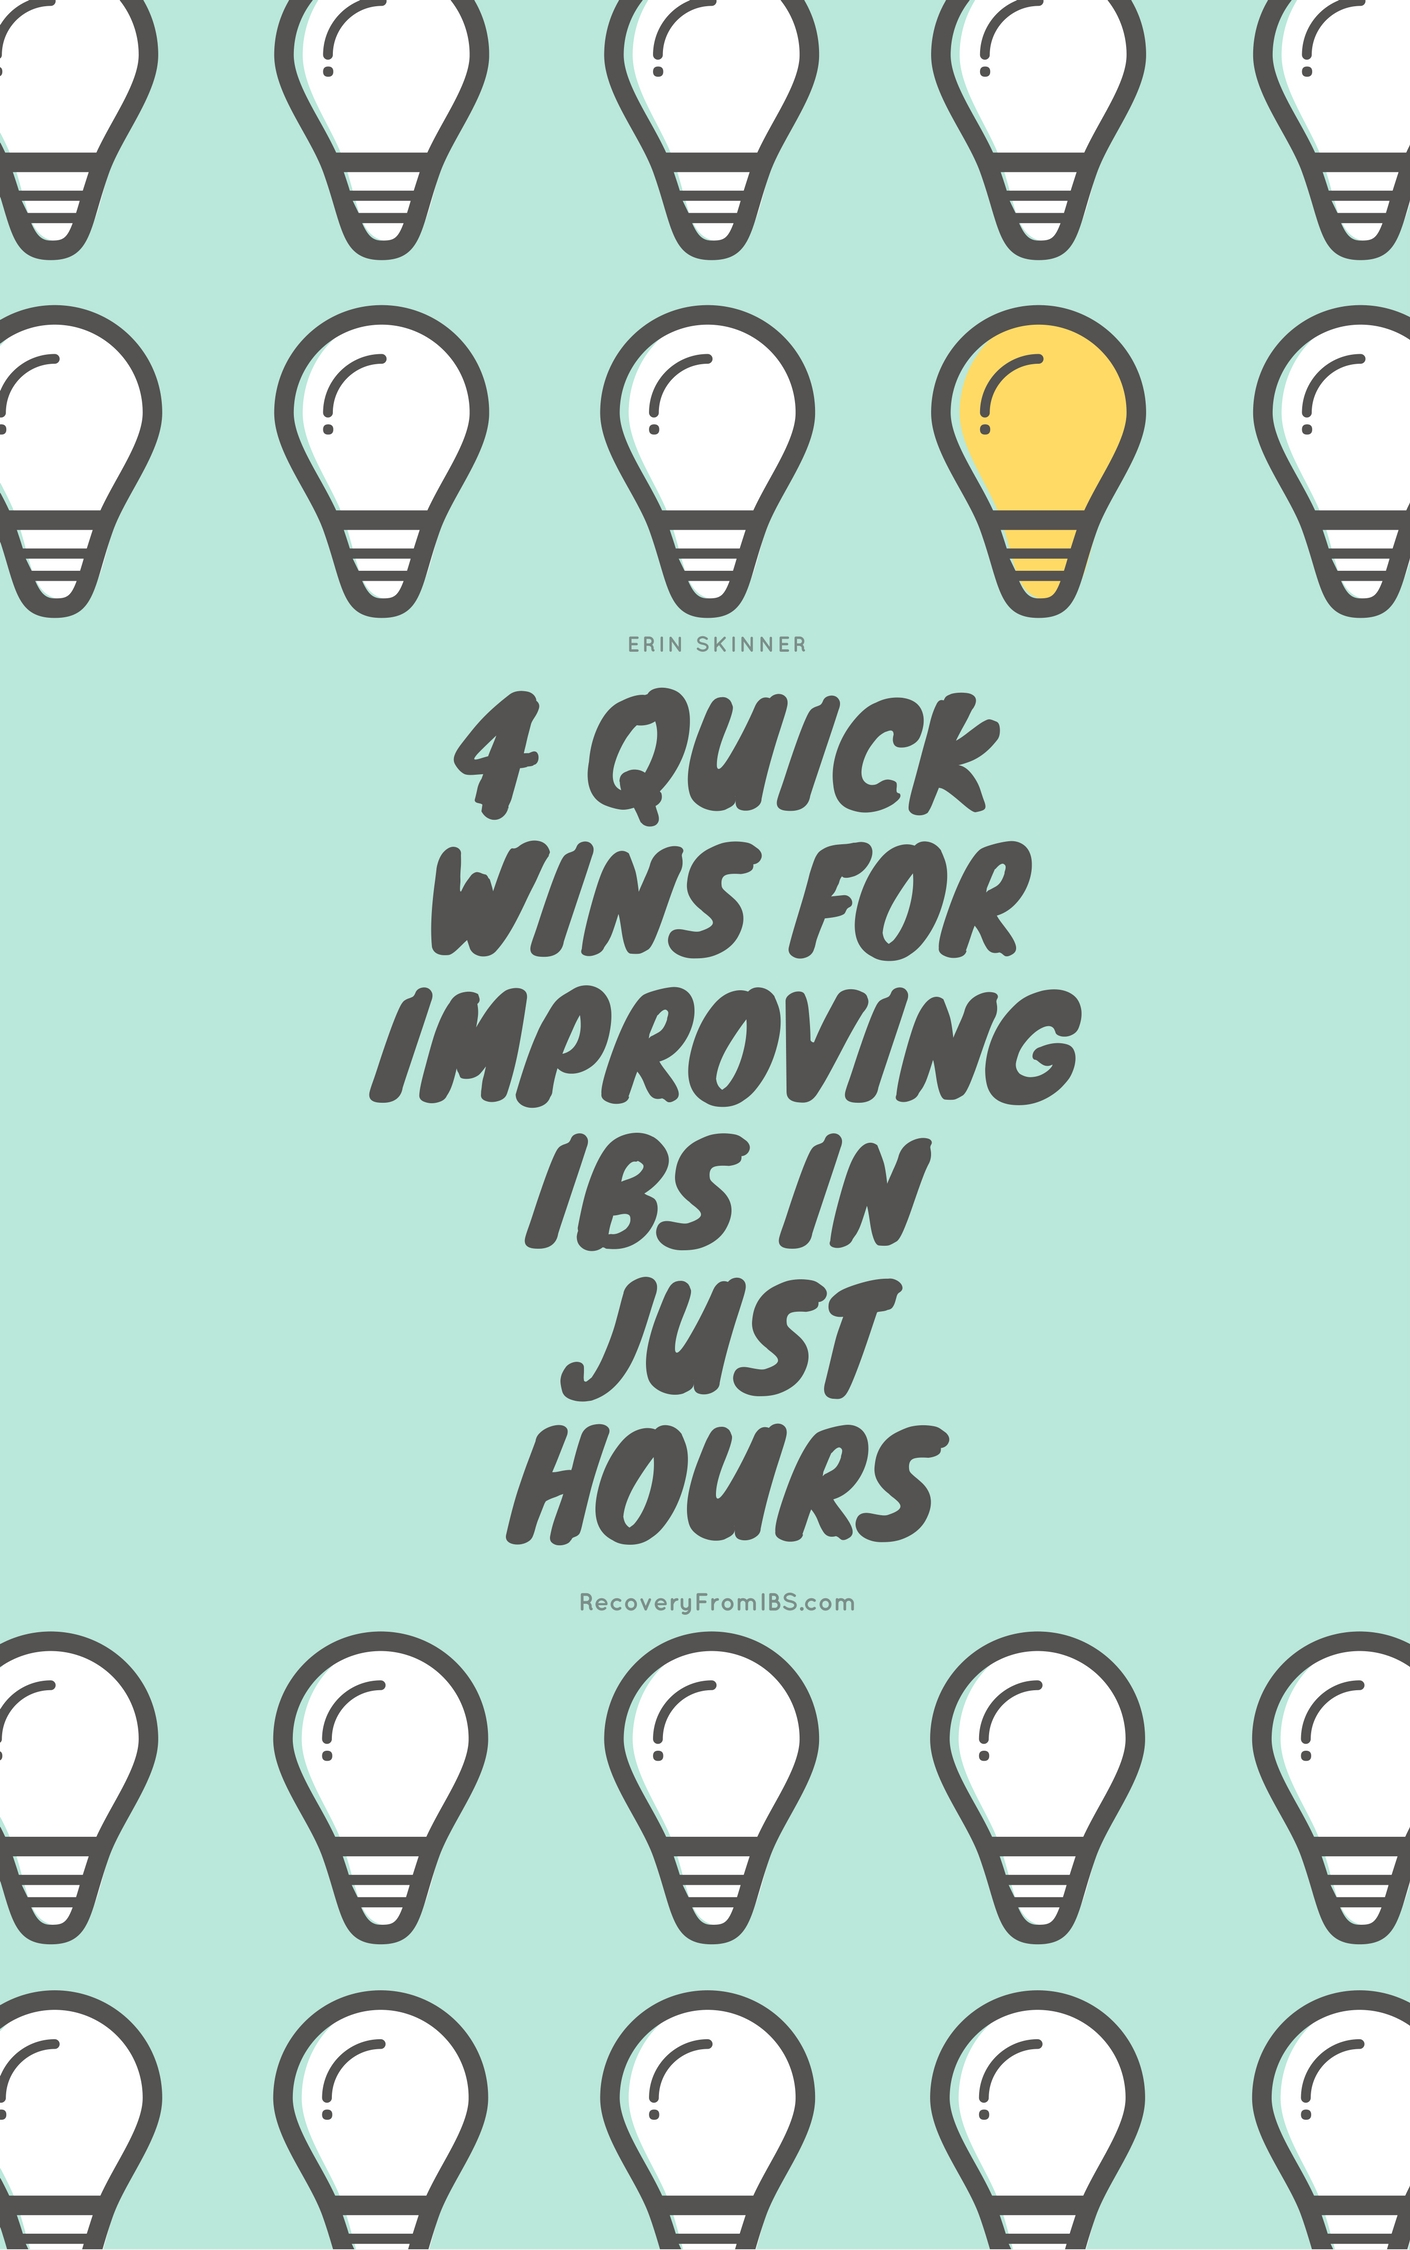 Bonus! - If you have IBS or digestive woes, don't miss my FREE list of quick wins. It's your ticket to make some simple swaps that get you quick improvment.